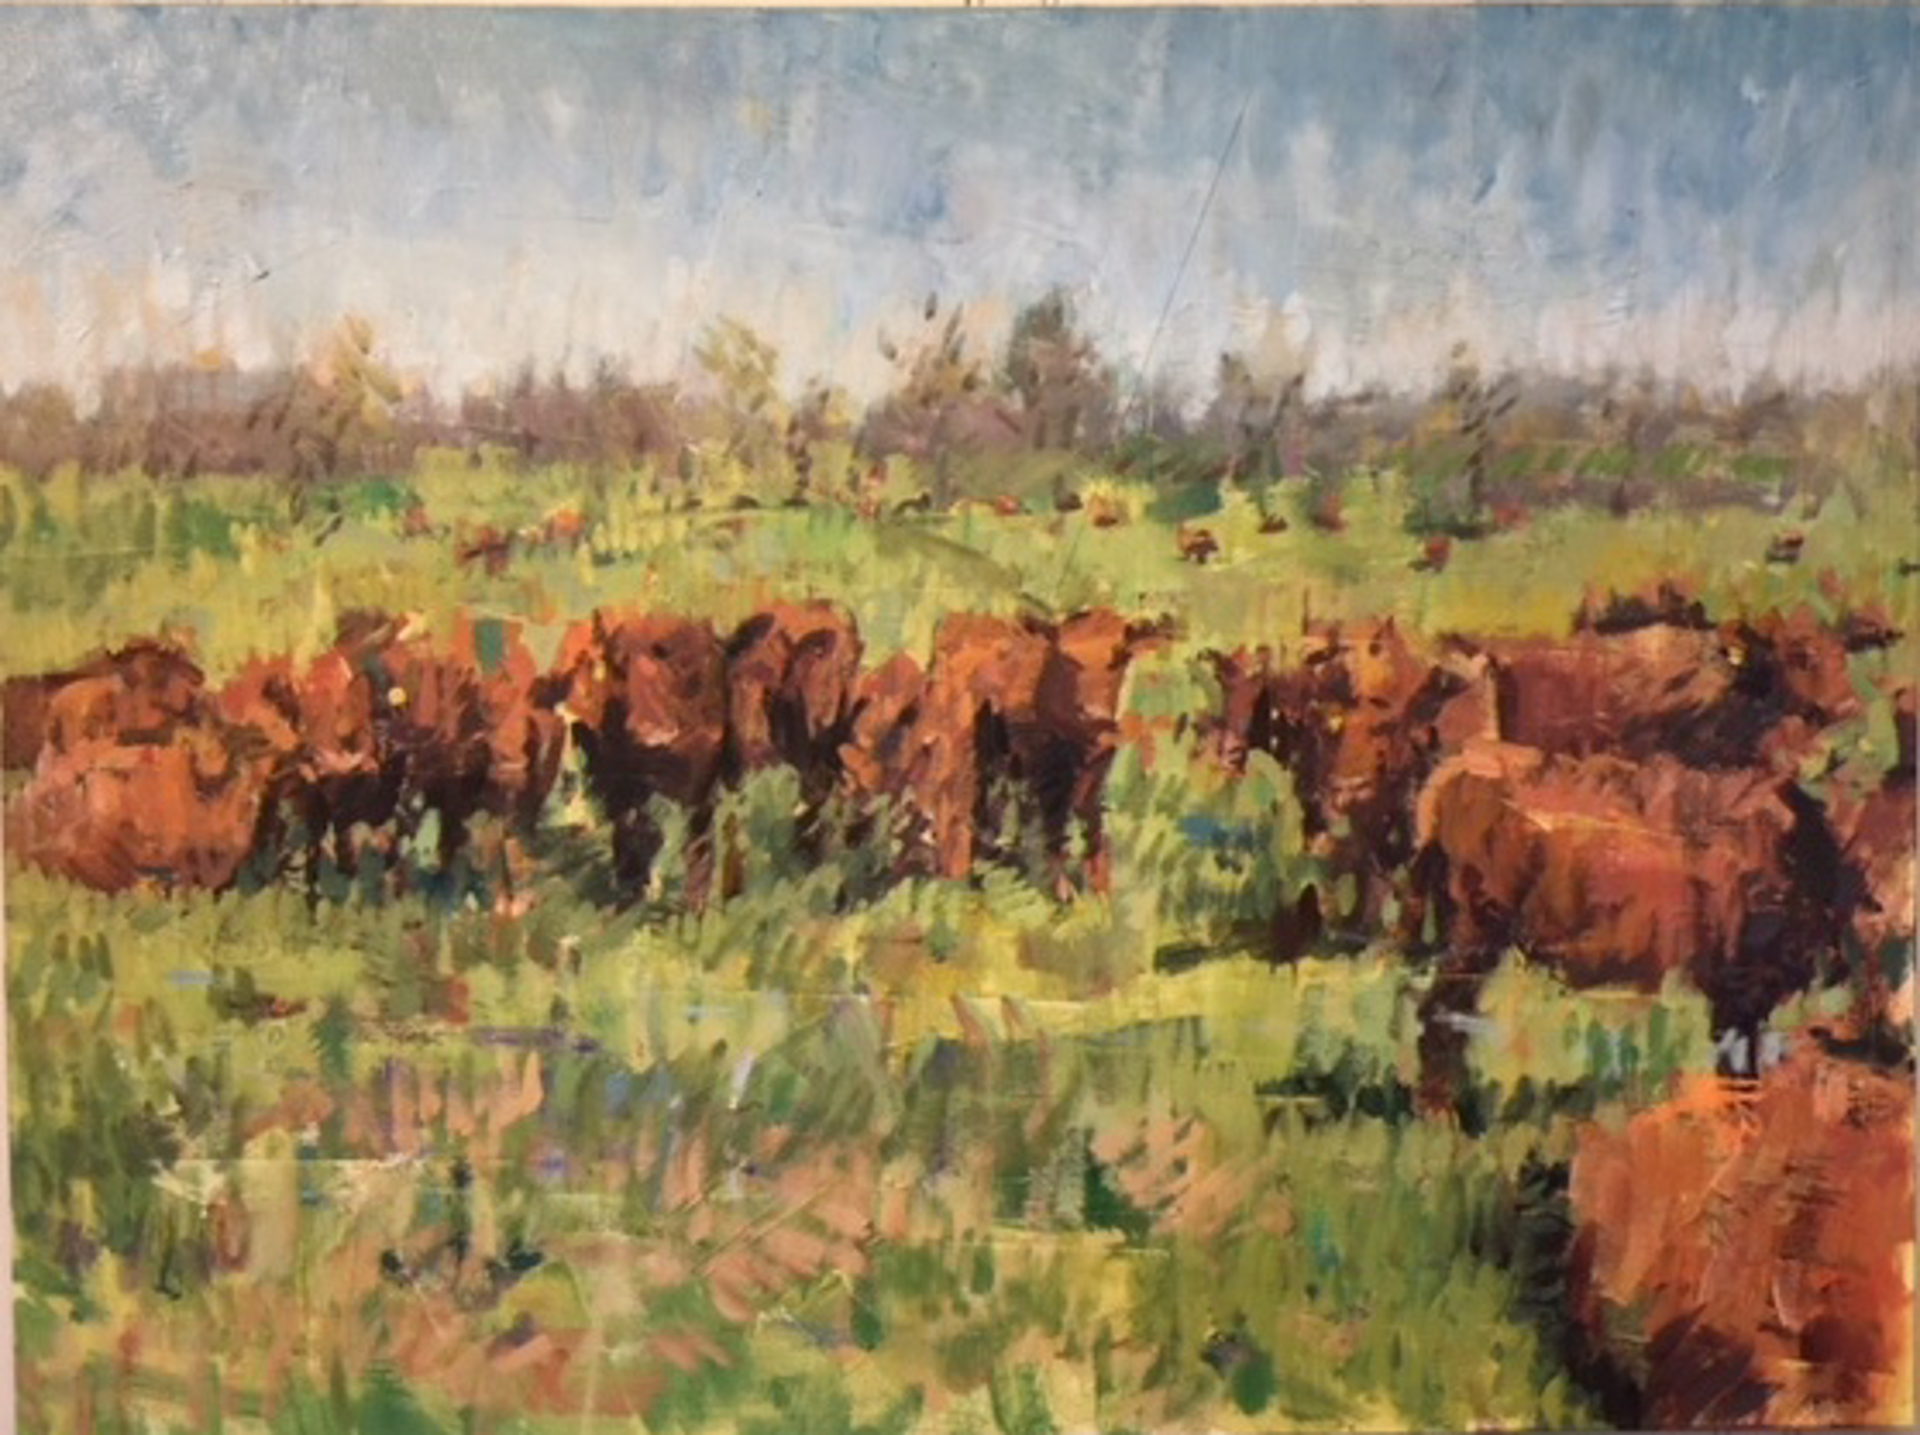 Jersey Cows by James Erickson